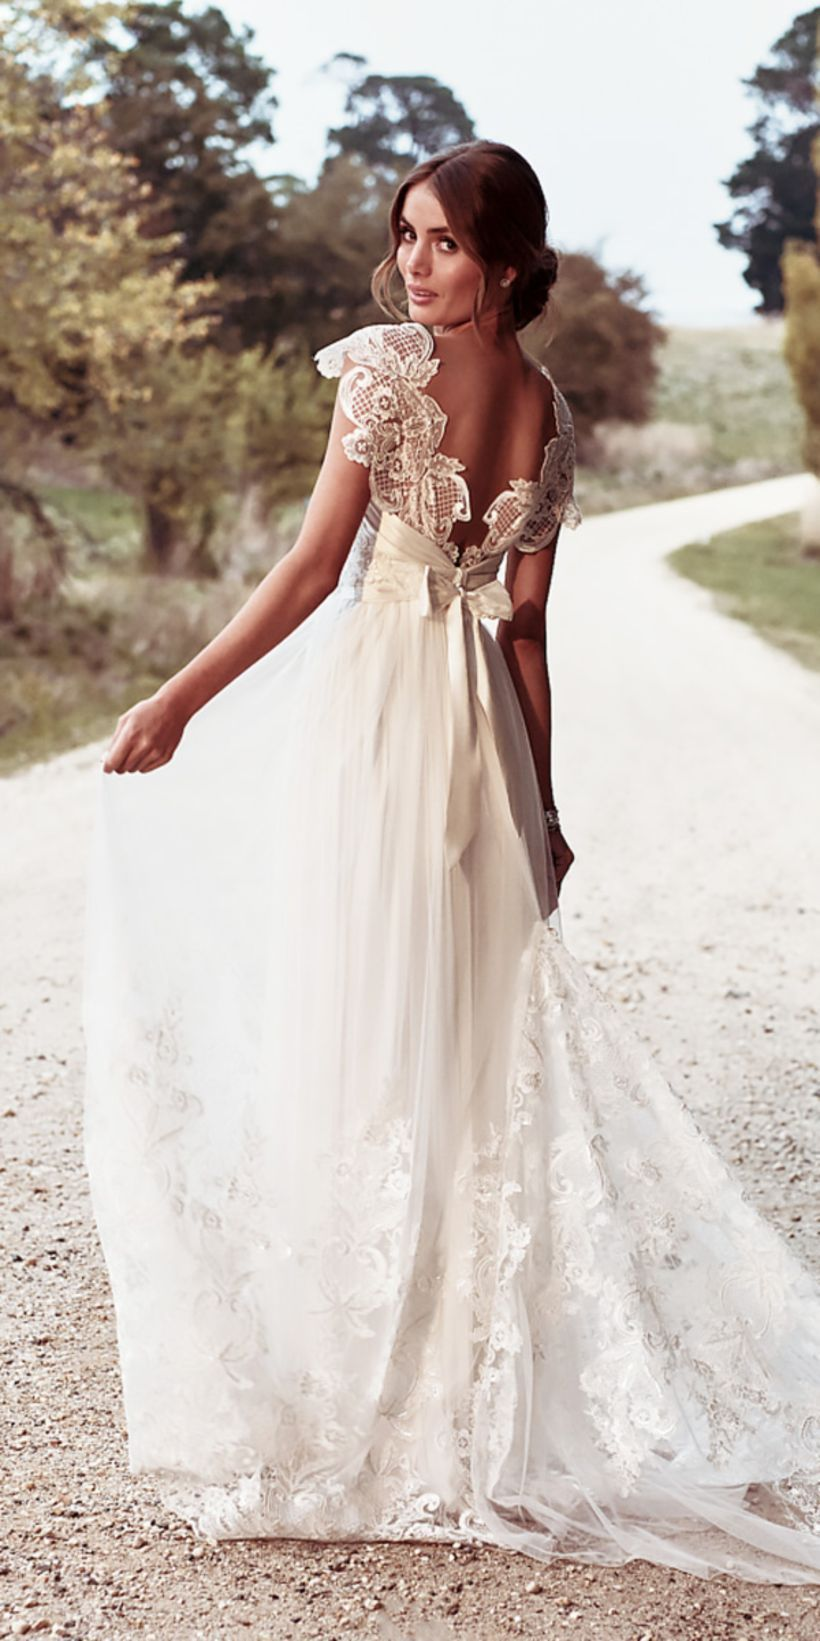 Amazing vintage wedding dress that so inspired from